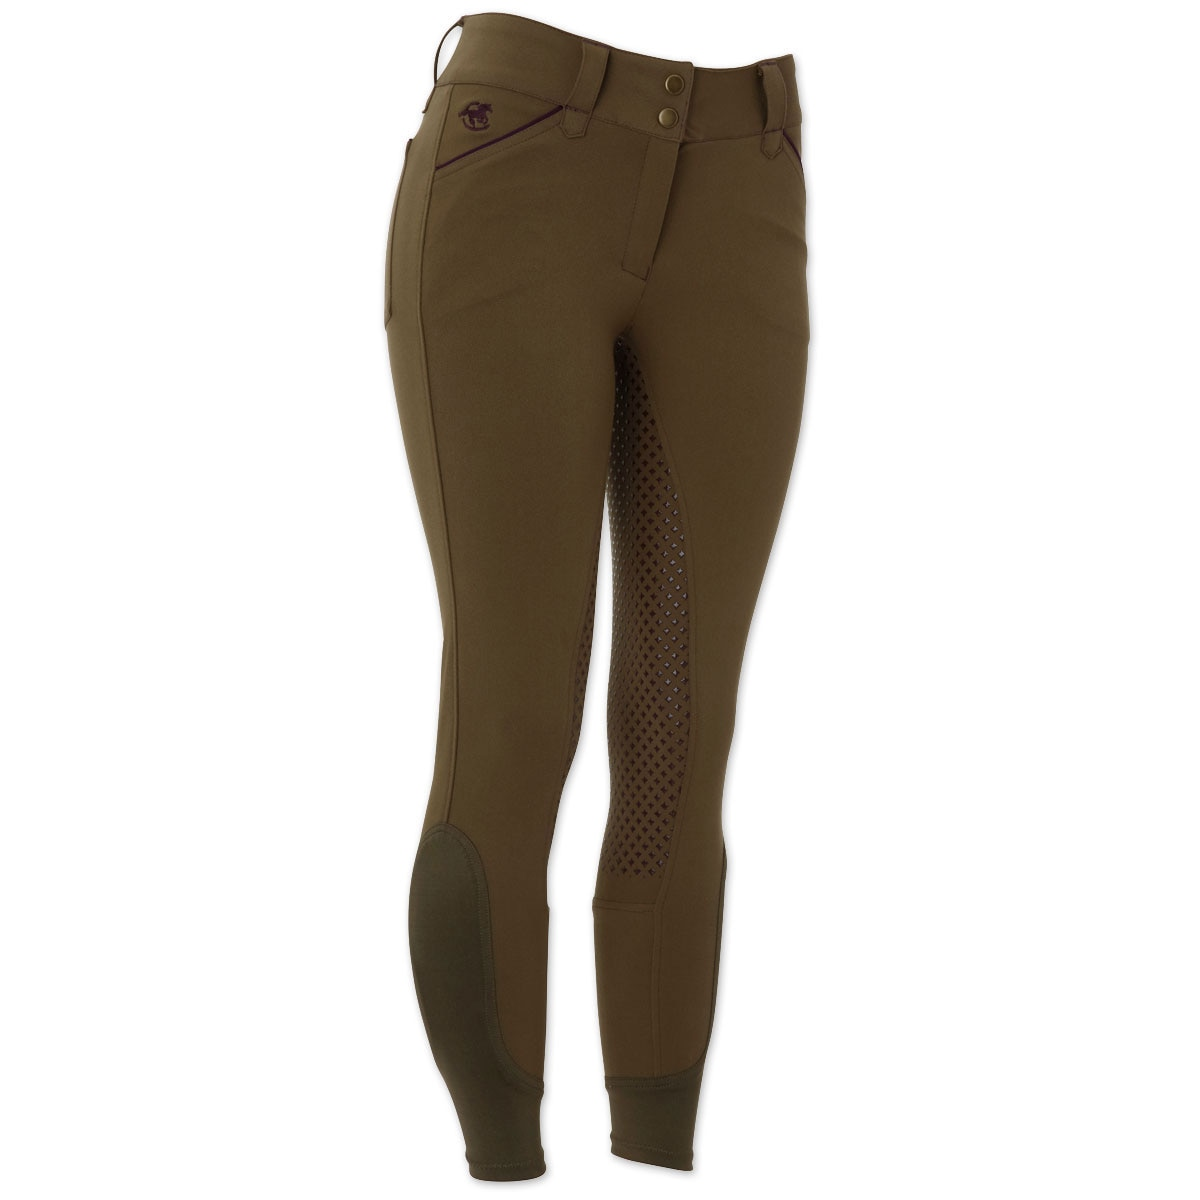 Piper Breeches by SmartPak - Silicone Grip Full Seat - Clearance!